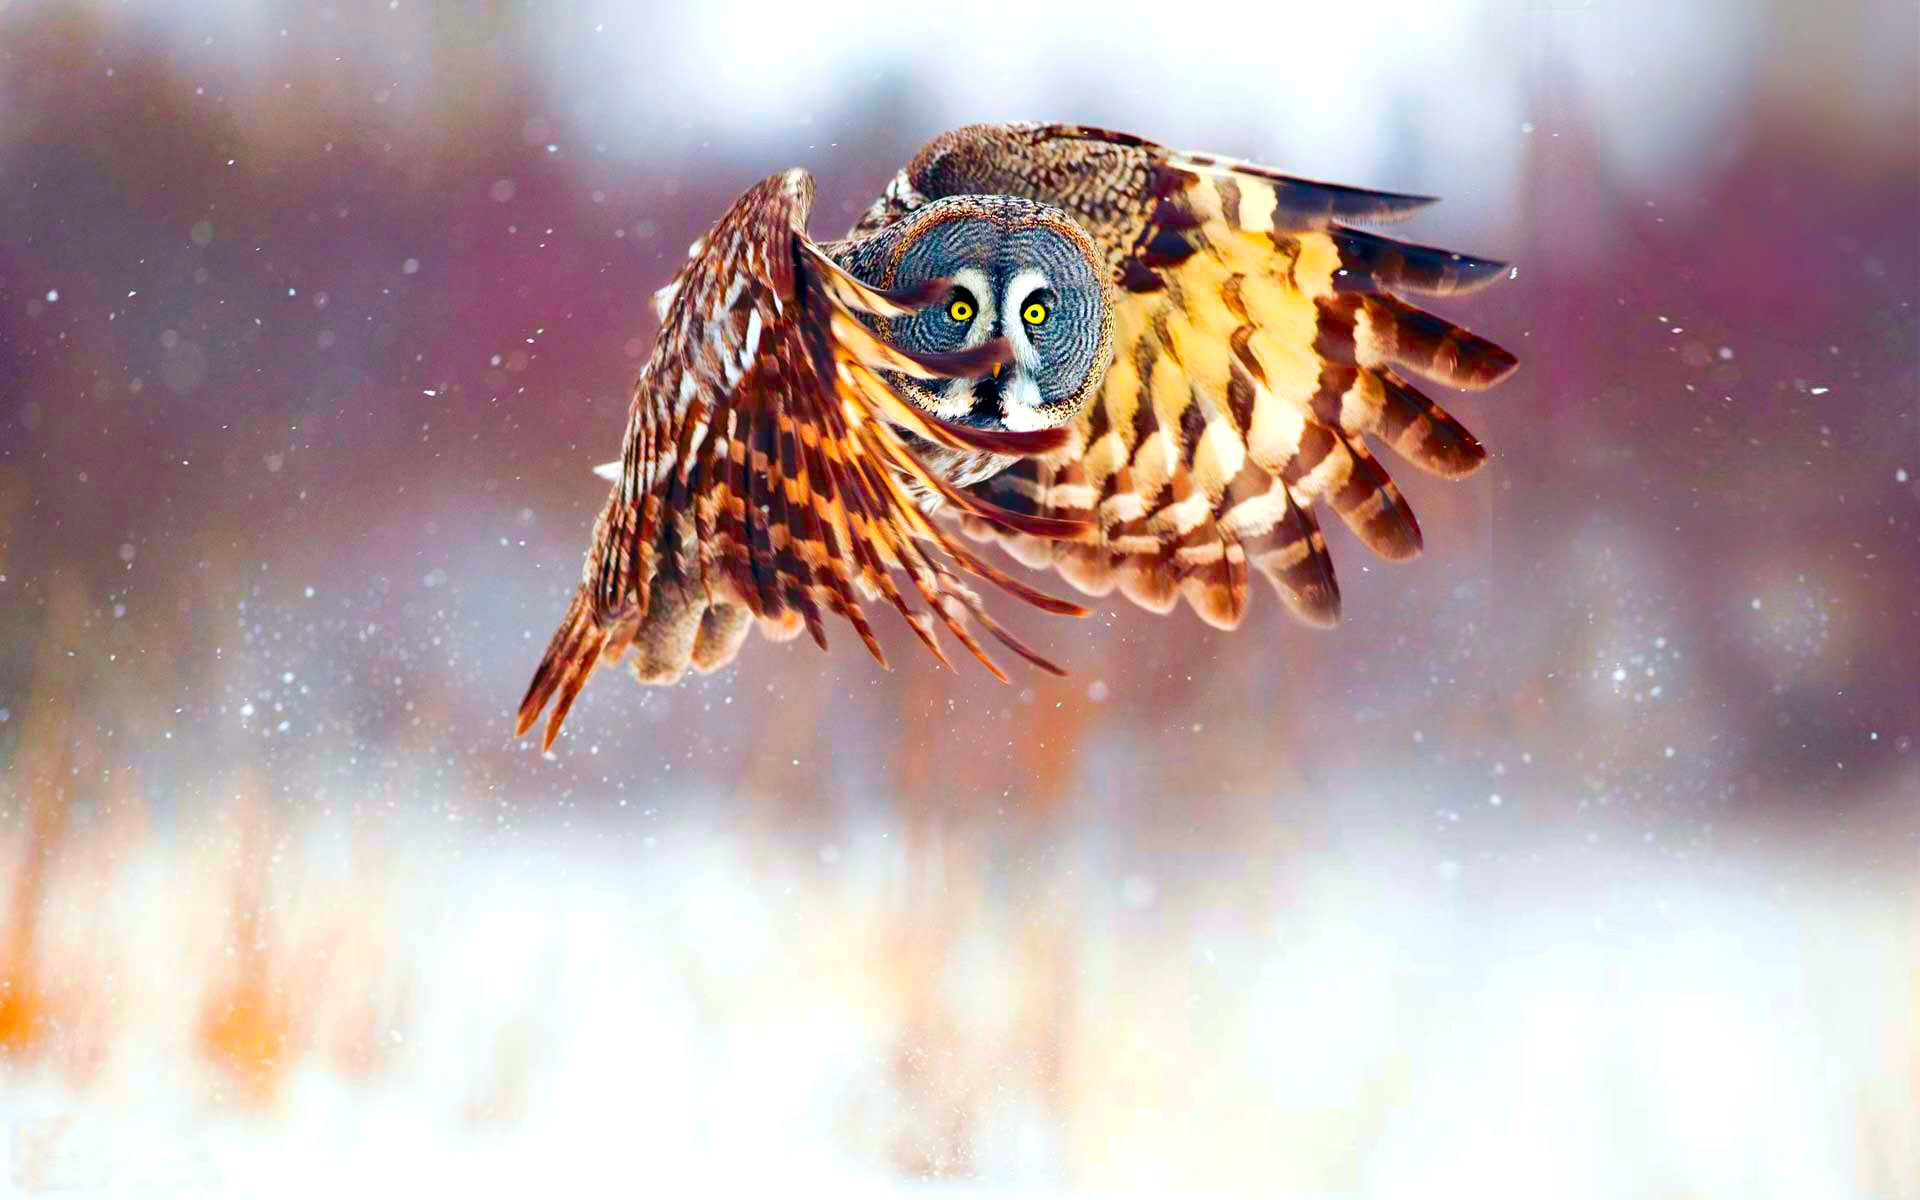 desktop-owl-wallpapers-hd | wallpaper.wiki